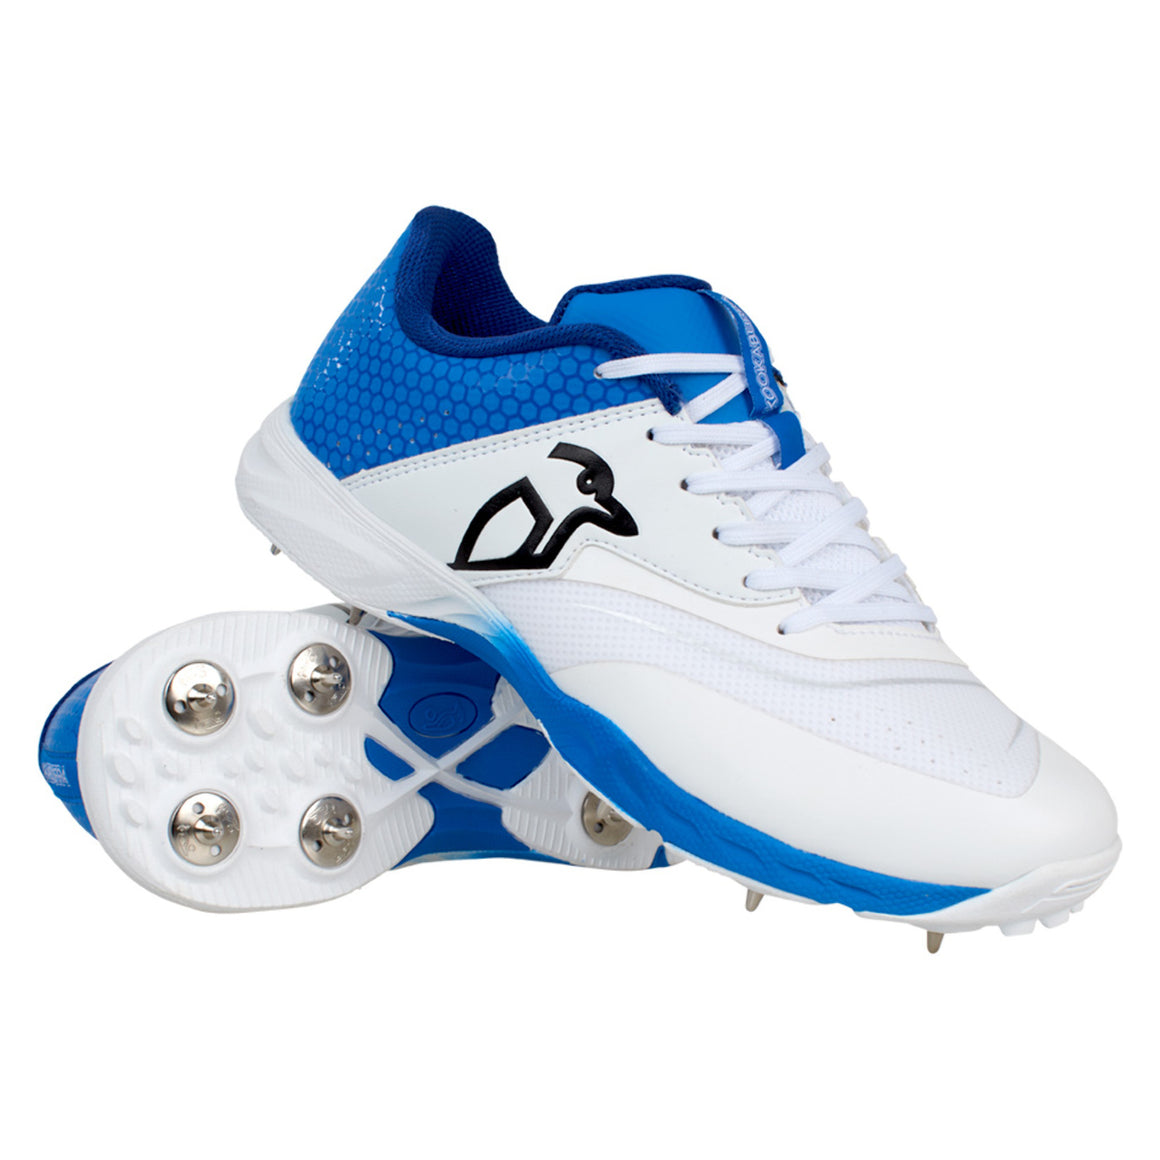 Kookaburra KC 2.0 Junior & Adult Spike 2020